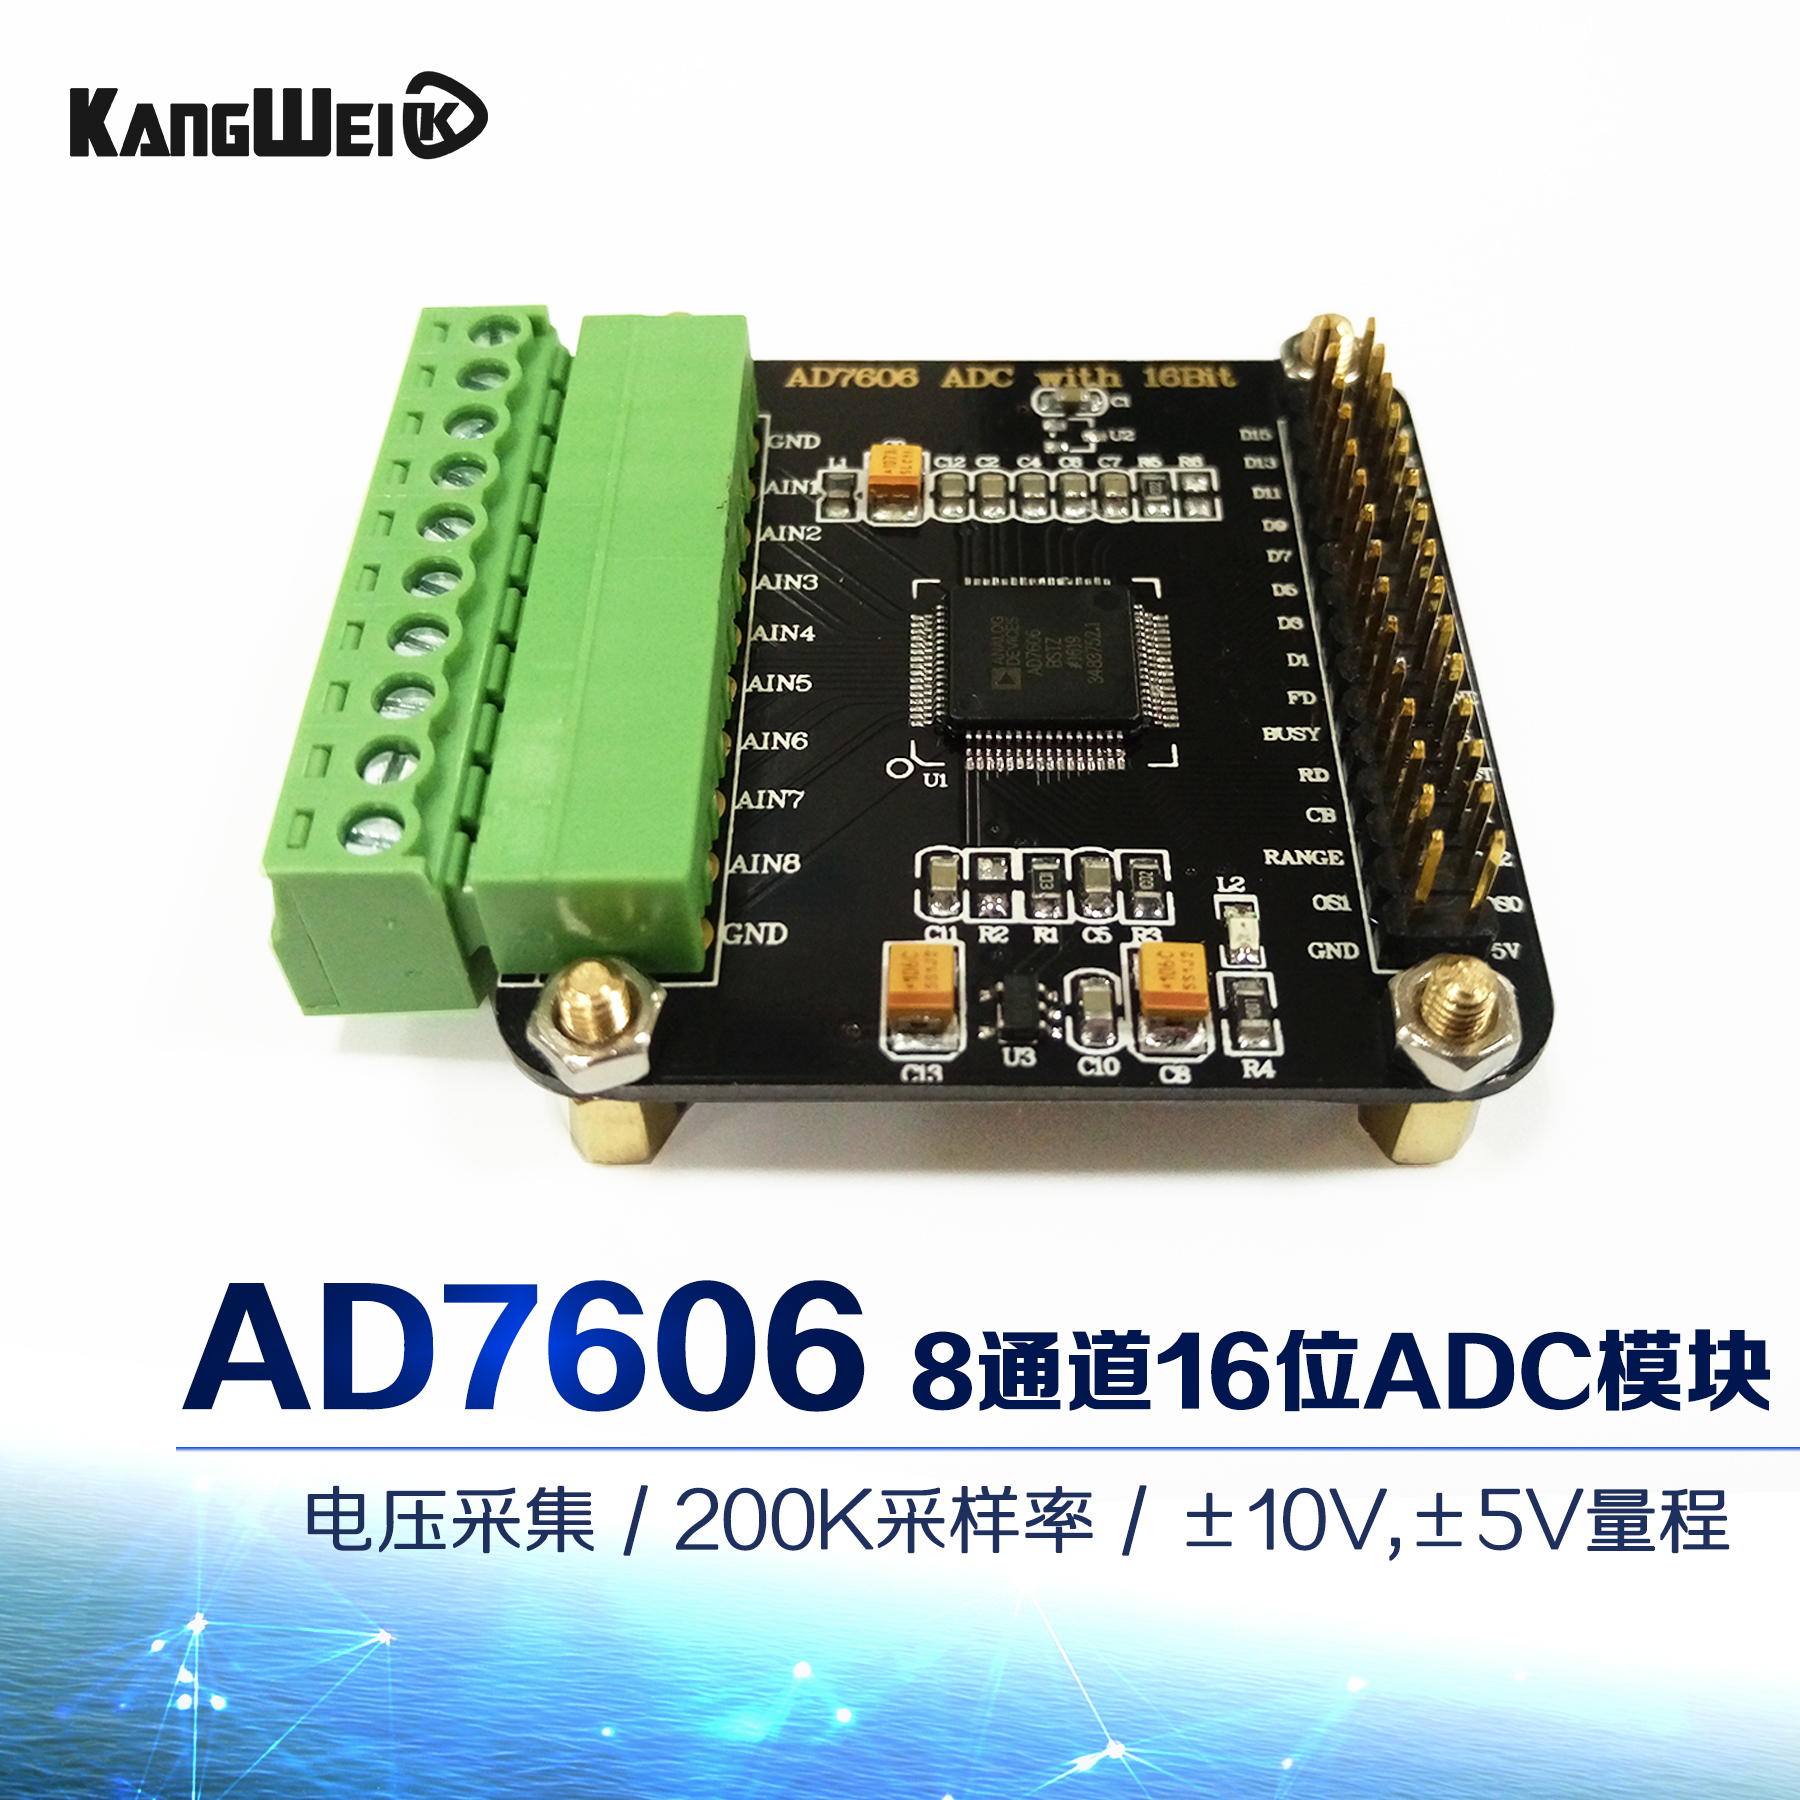 AD7606 multi-channel AD data acquisition module, 16 bit ADC, 8 way synchronous sampling frequency, 200KHz 100pcs lot new stm8s003f3p6 8s003f3p6 tssop 20 16 mhz 8 bit mcu 8 kbytes flash 128 bytes data eeprom 10 bit adc ic